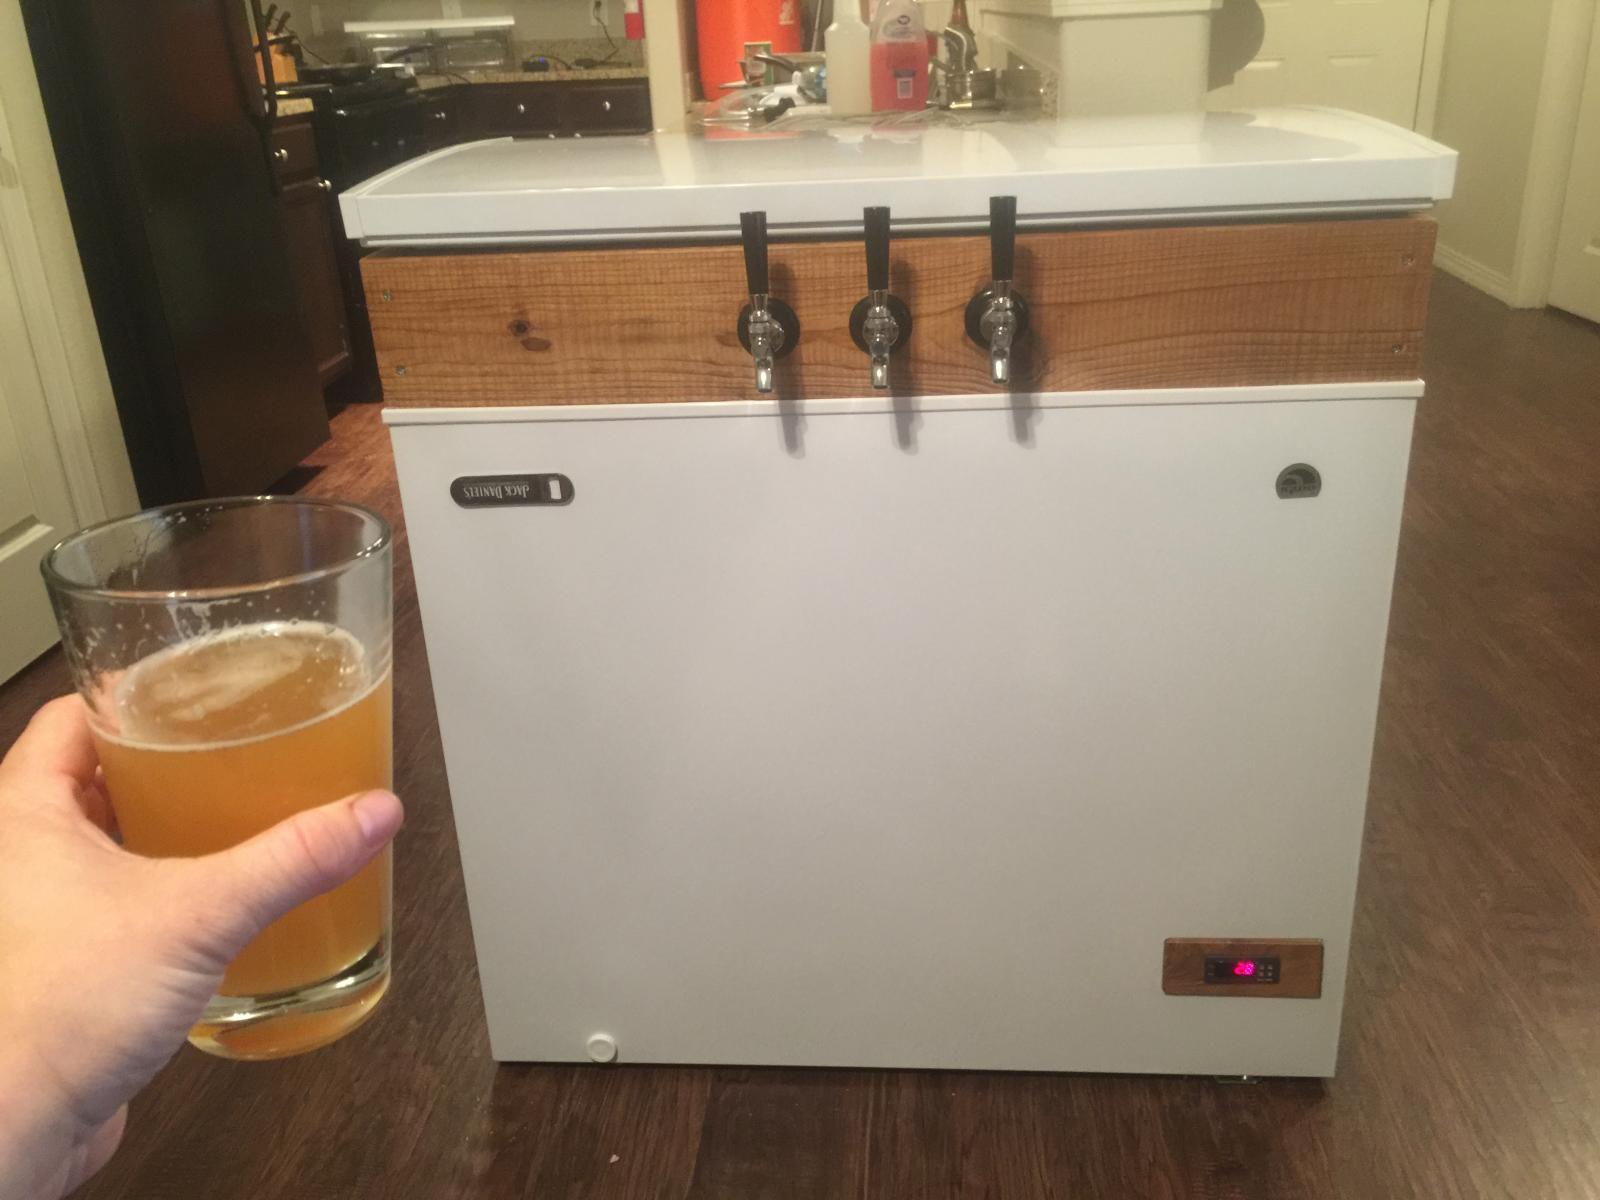 Igloo 71 Frf710 Kegerator Build Cost Pictures Homebrewtalk Keezer Temp Controller Using The Stc1000 Mostly Harmless Img 6902